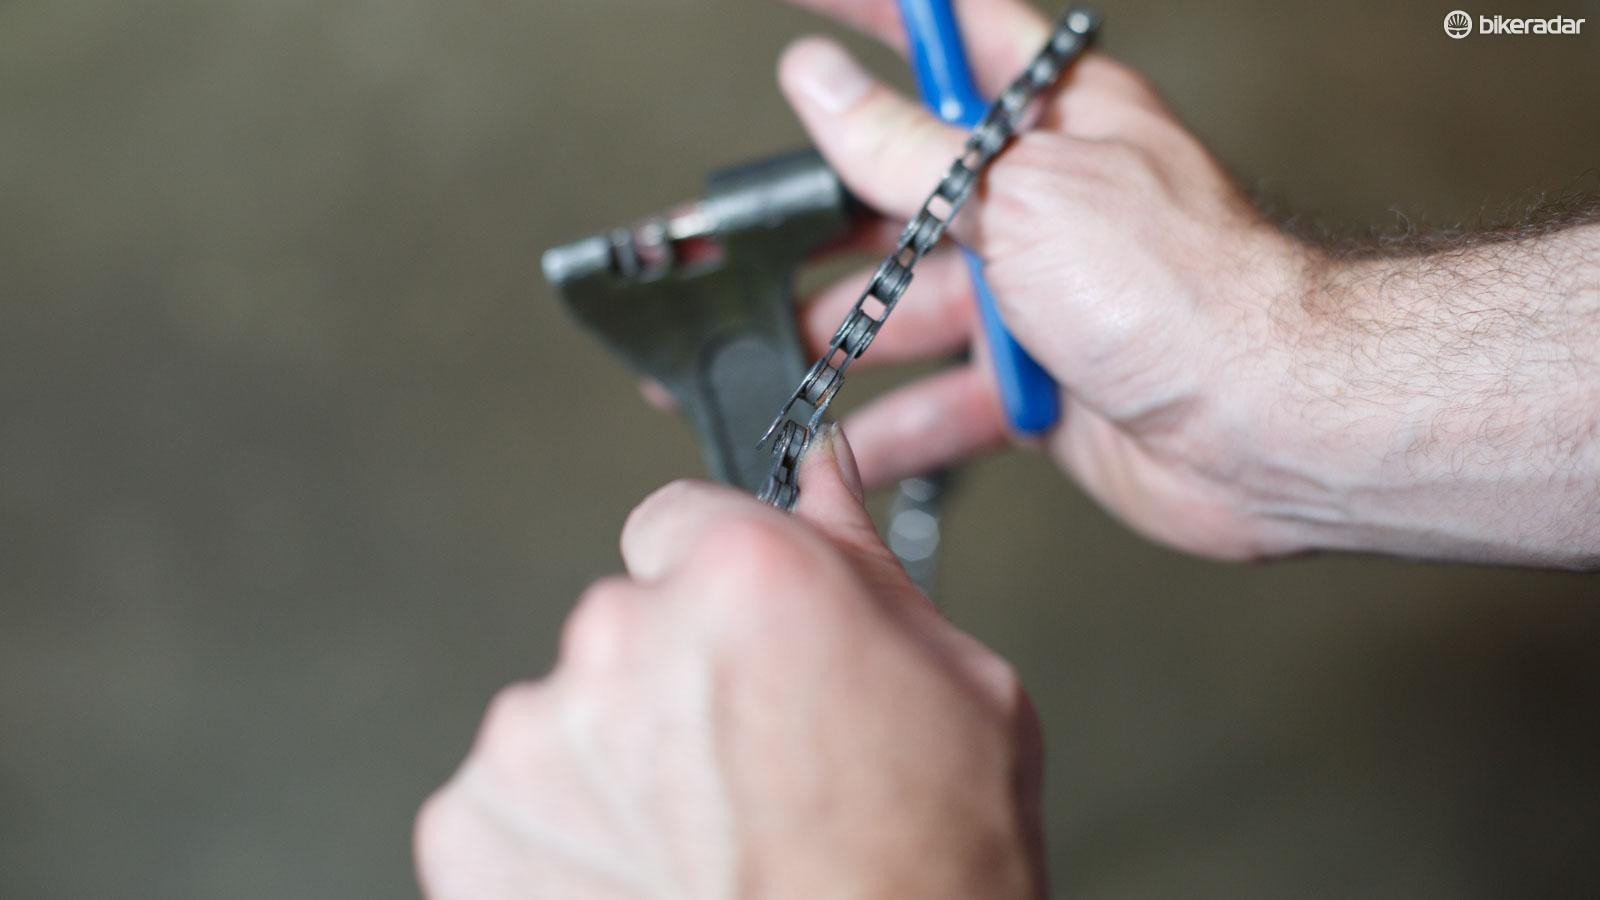 Be wary of damaged chain links